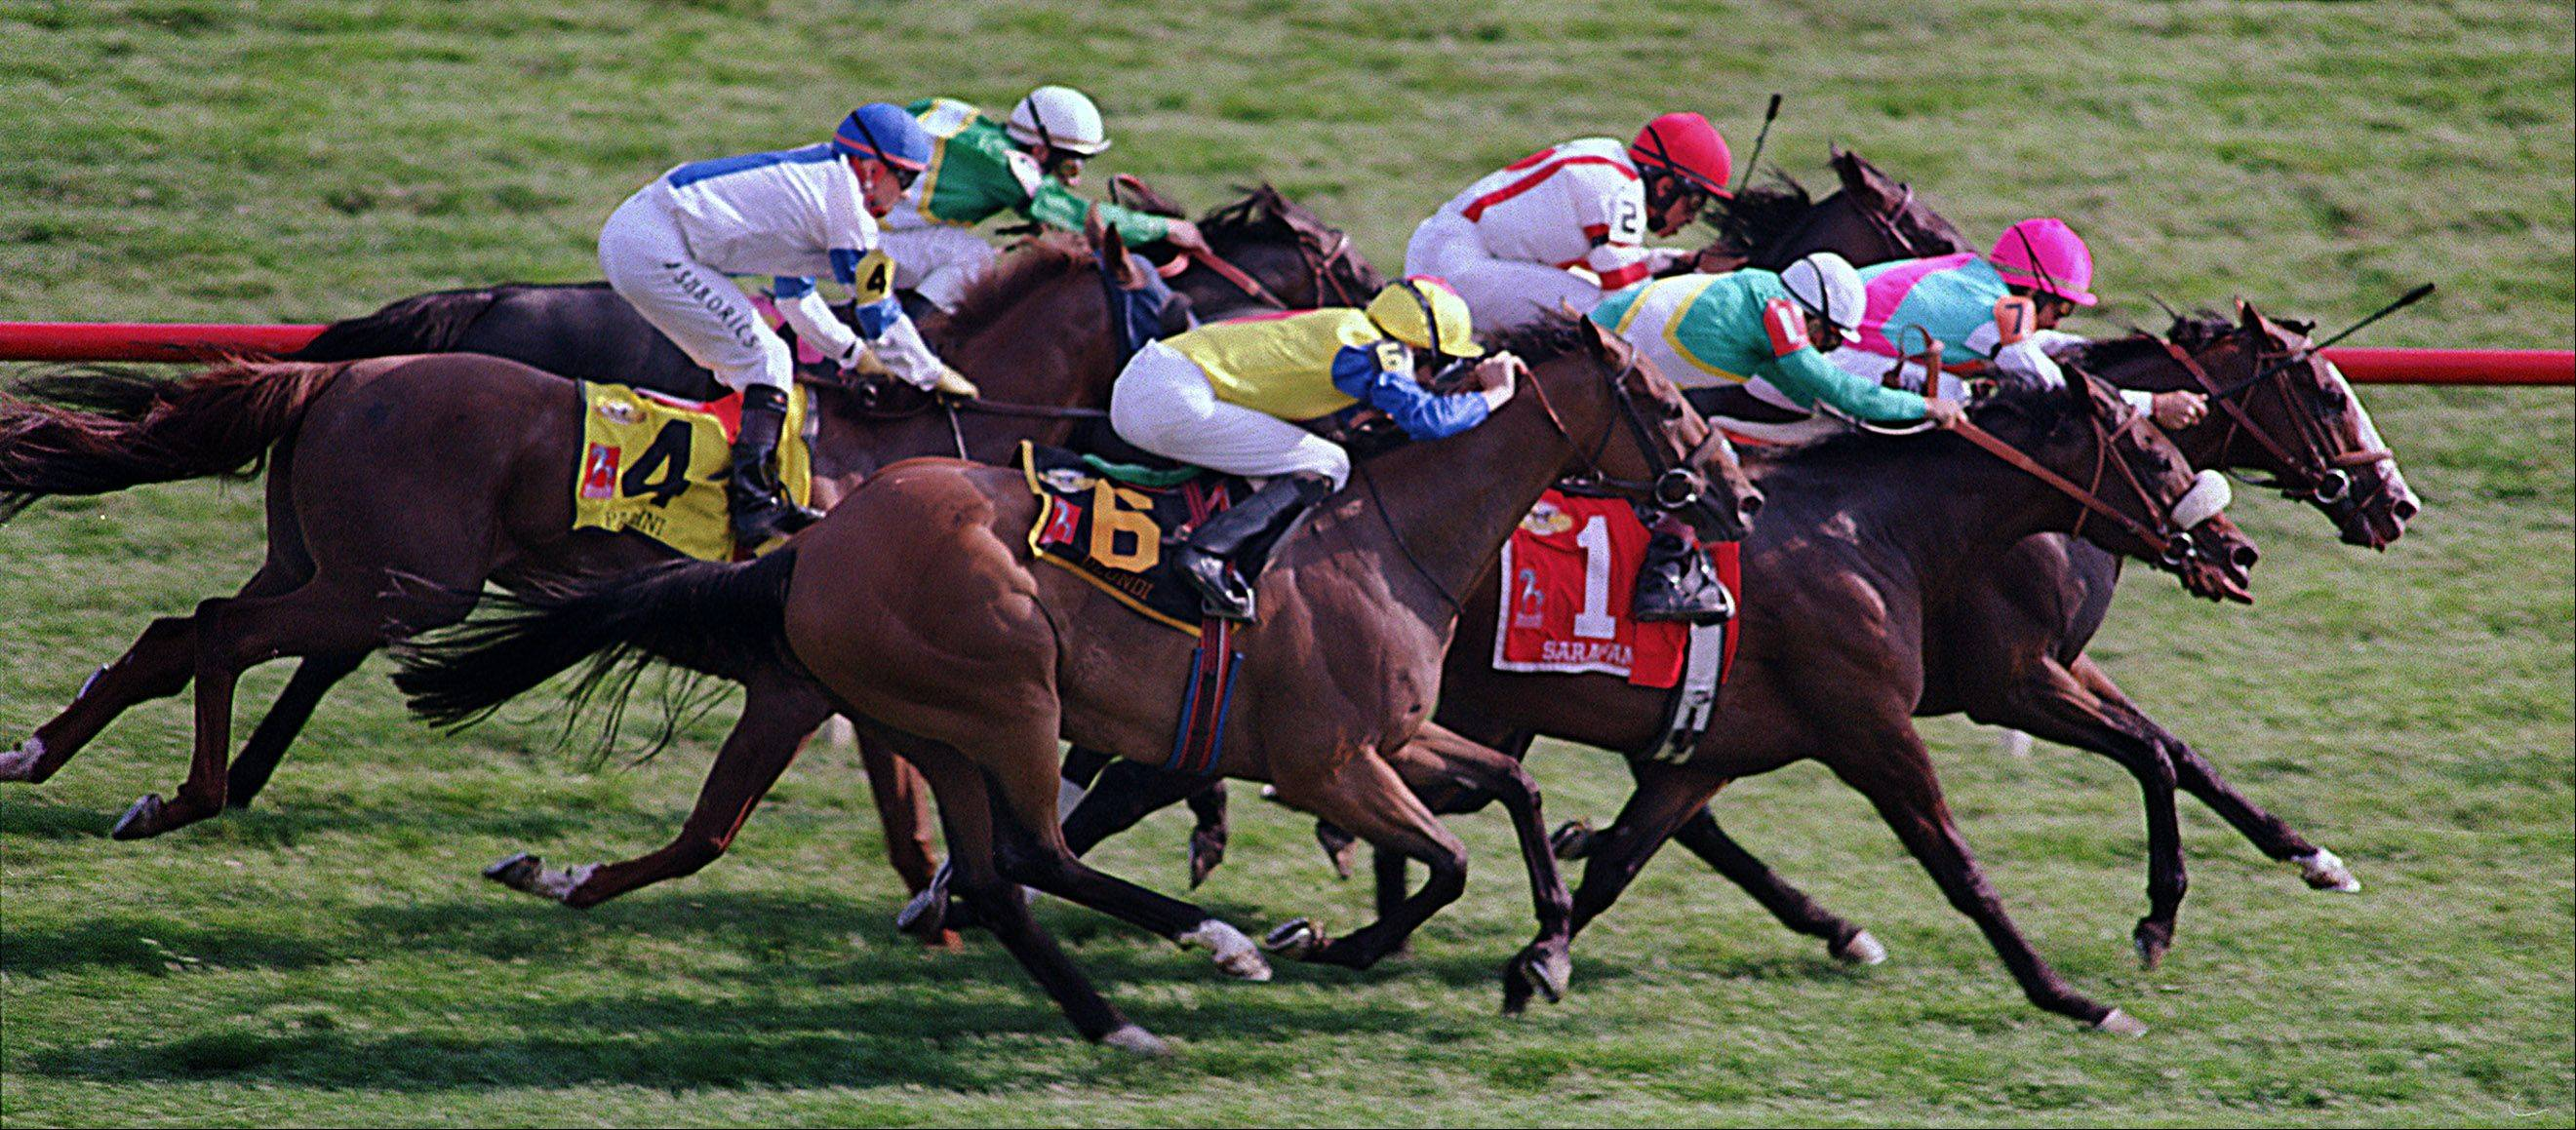 Two companies that had let Illinoisans bet on horses online even after the law allowing it expired have stopped.